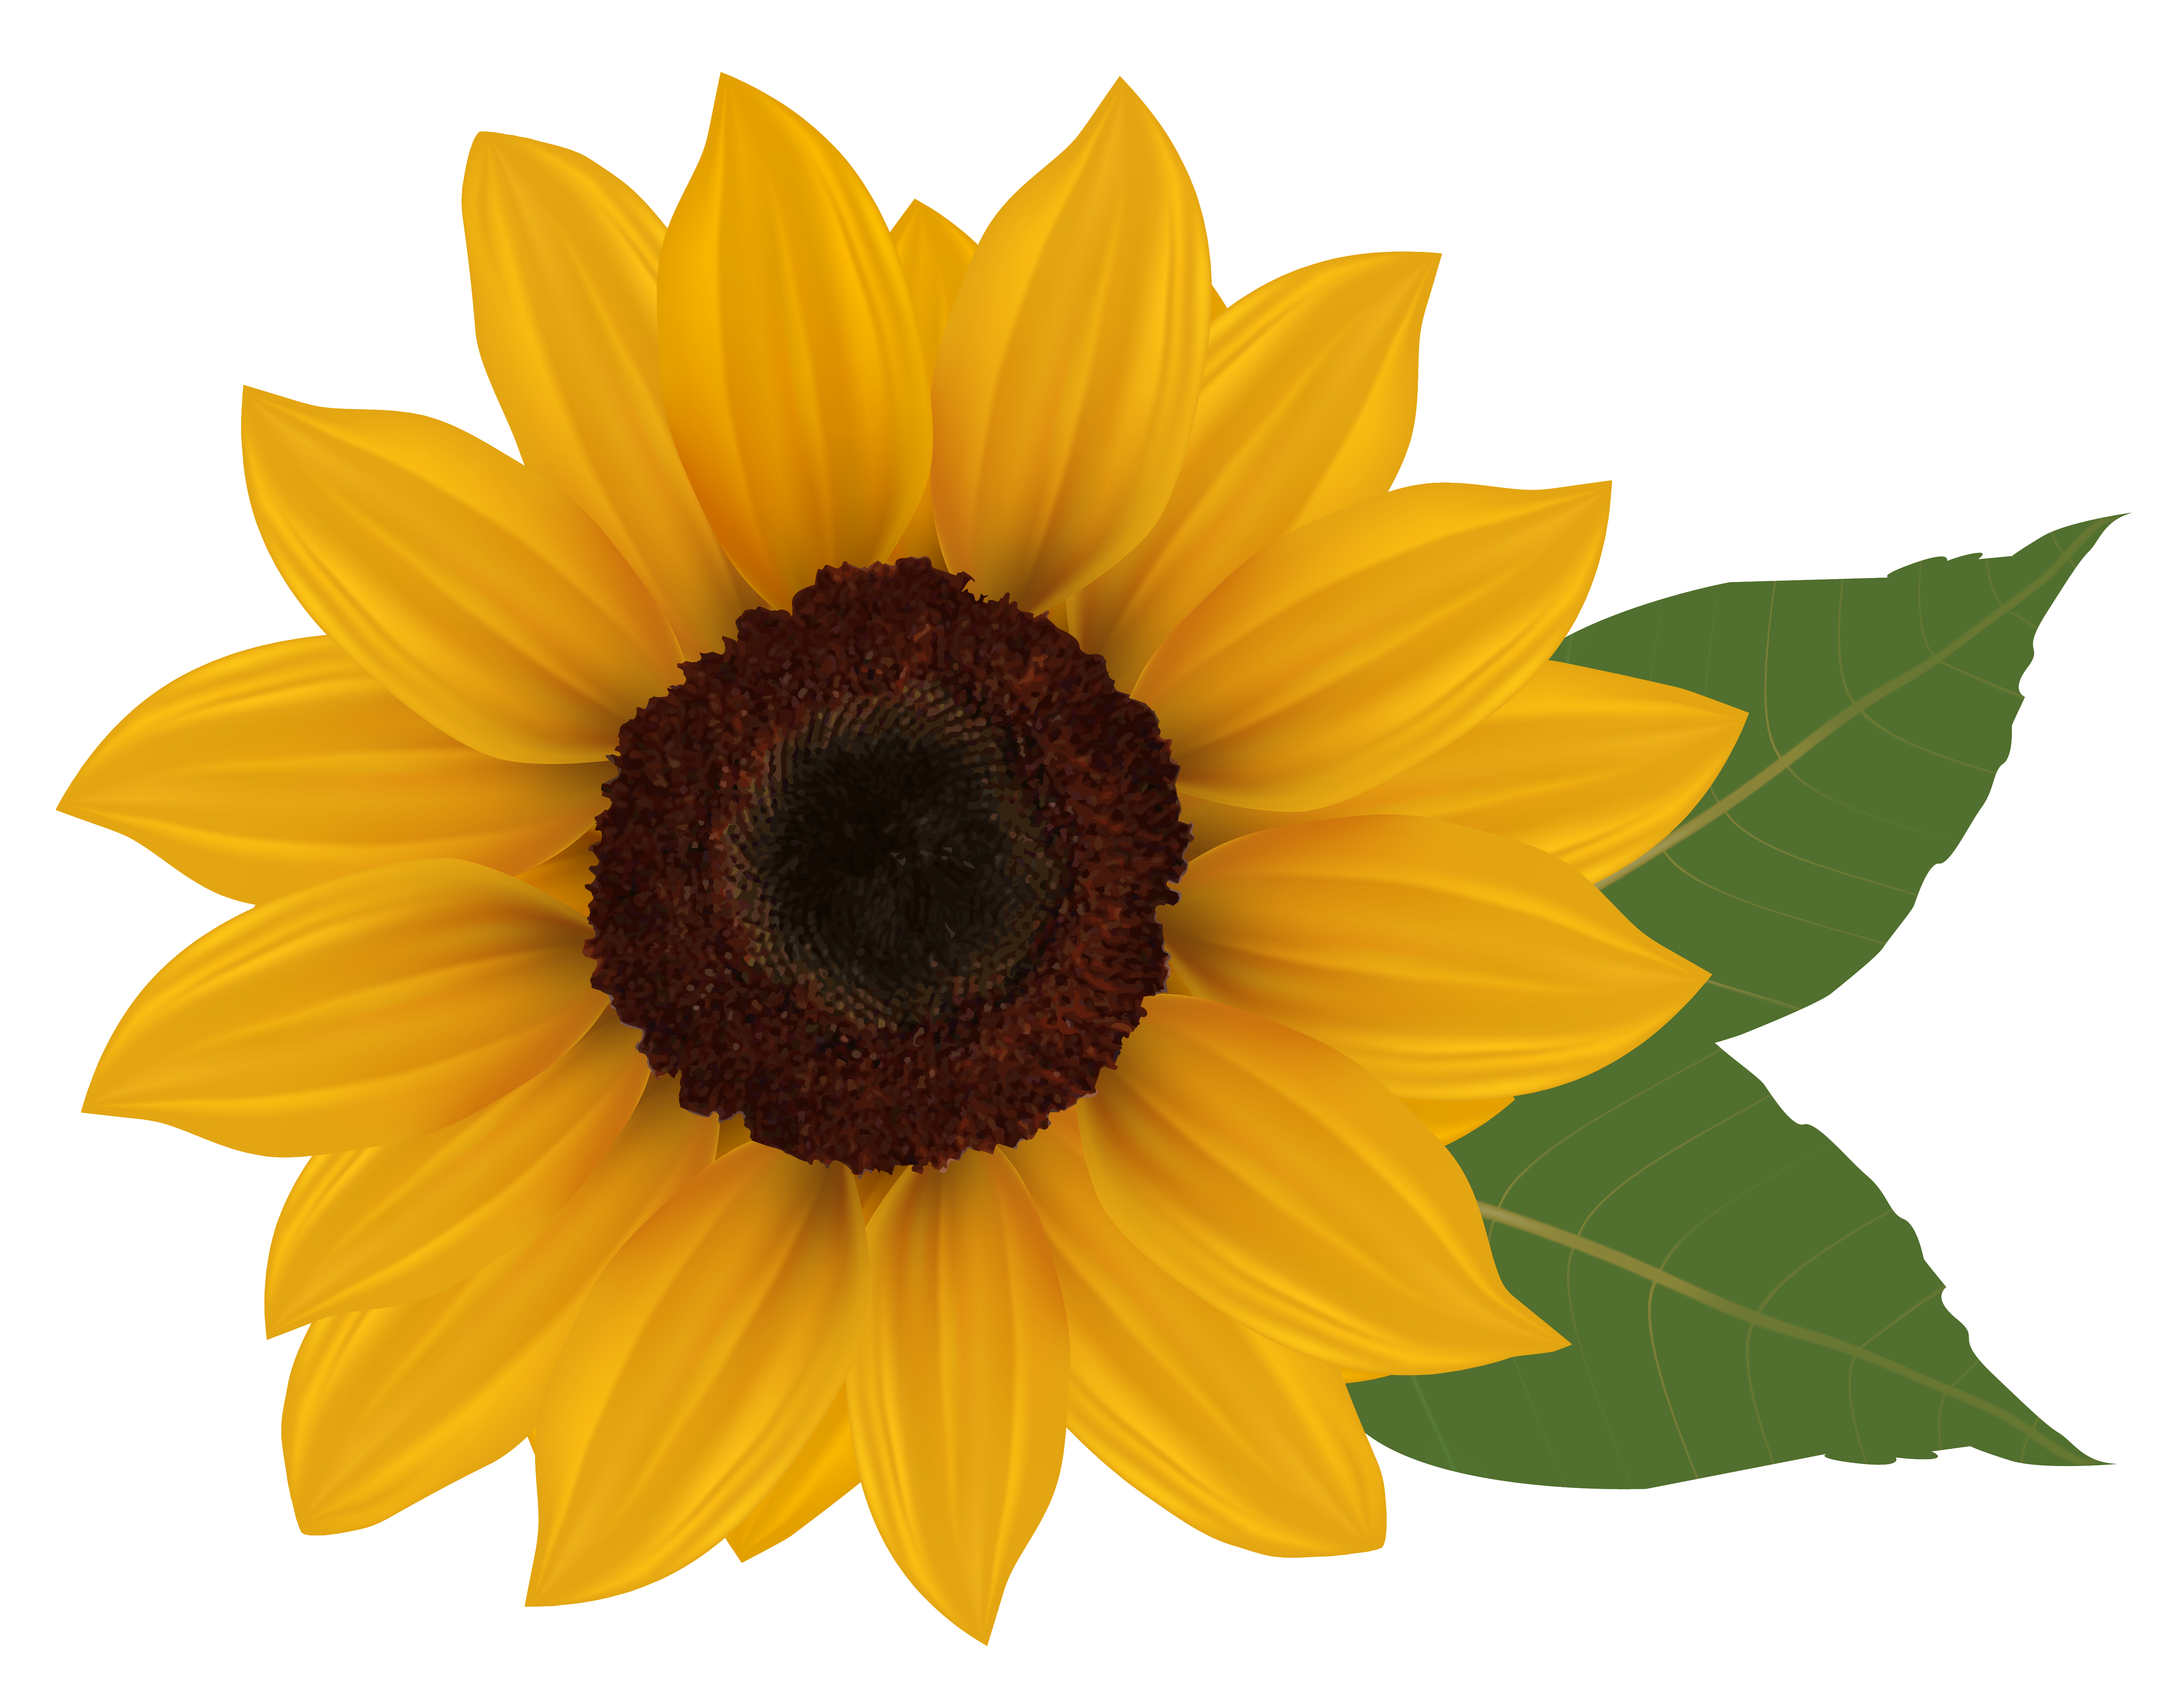 Sun flowerr clipart svg library stock Sunflower profile clipart - Clipground | Tattoo/Piercing ... svg library stock